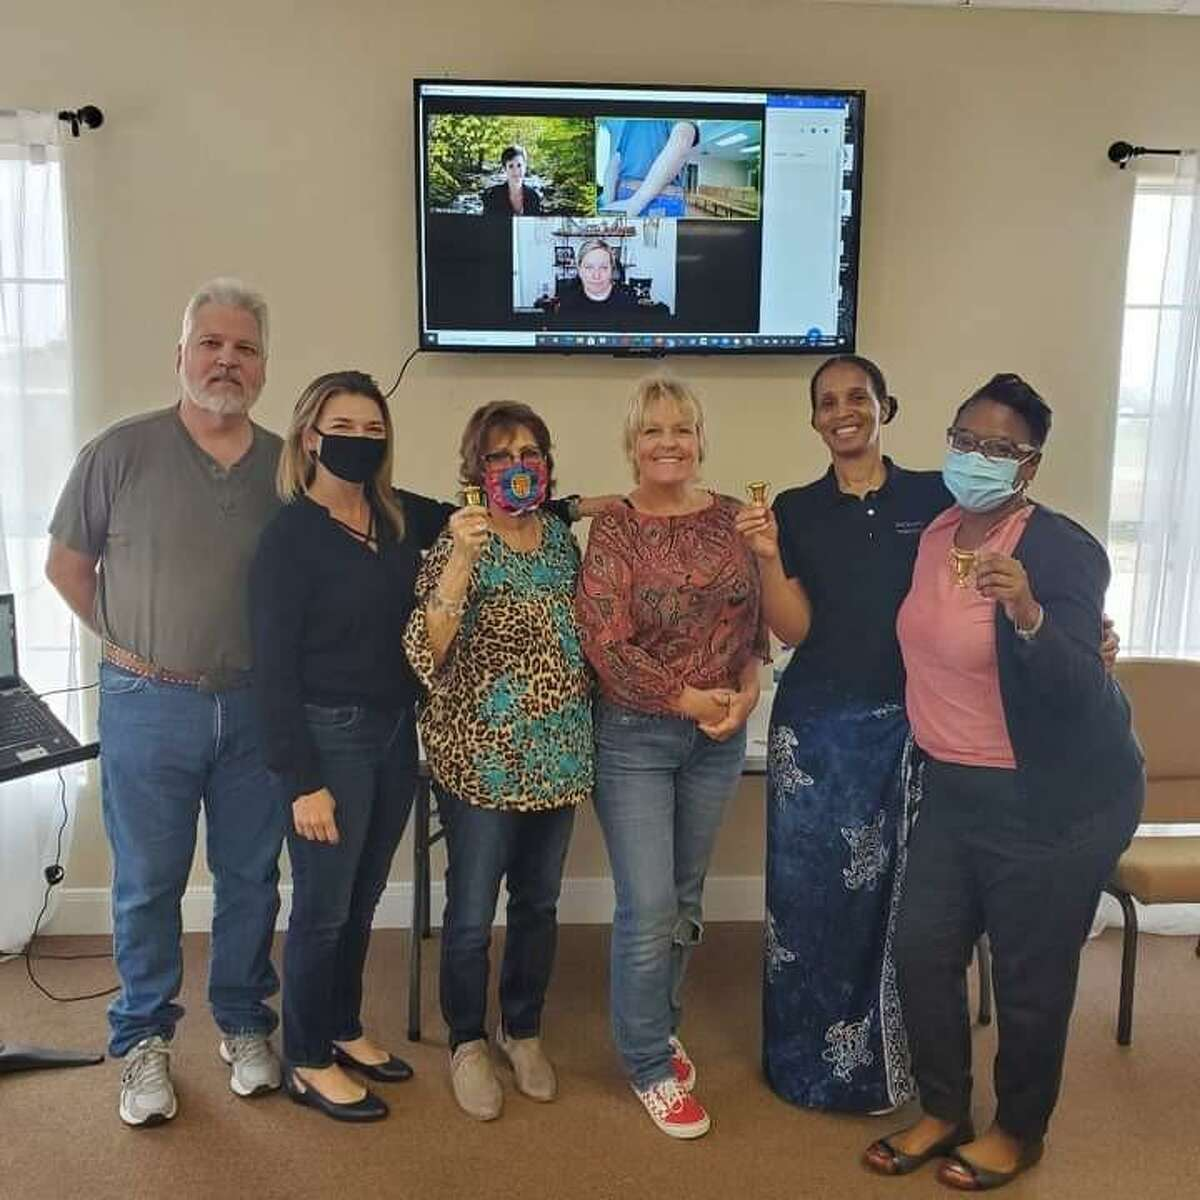 """A new Toastmasters Club - """"Montgomery Speaks"""" - is forming in Montgomery. The club meets on the second and fourth Monday of the month at Hope Tabernacle on Freeport Drive. Pictured here is a hybrid meeting with some members in person and some online."""